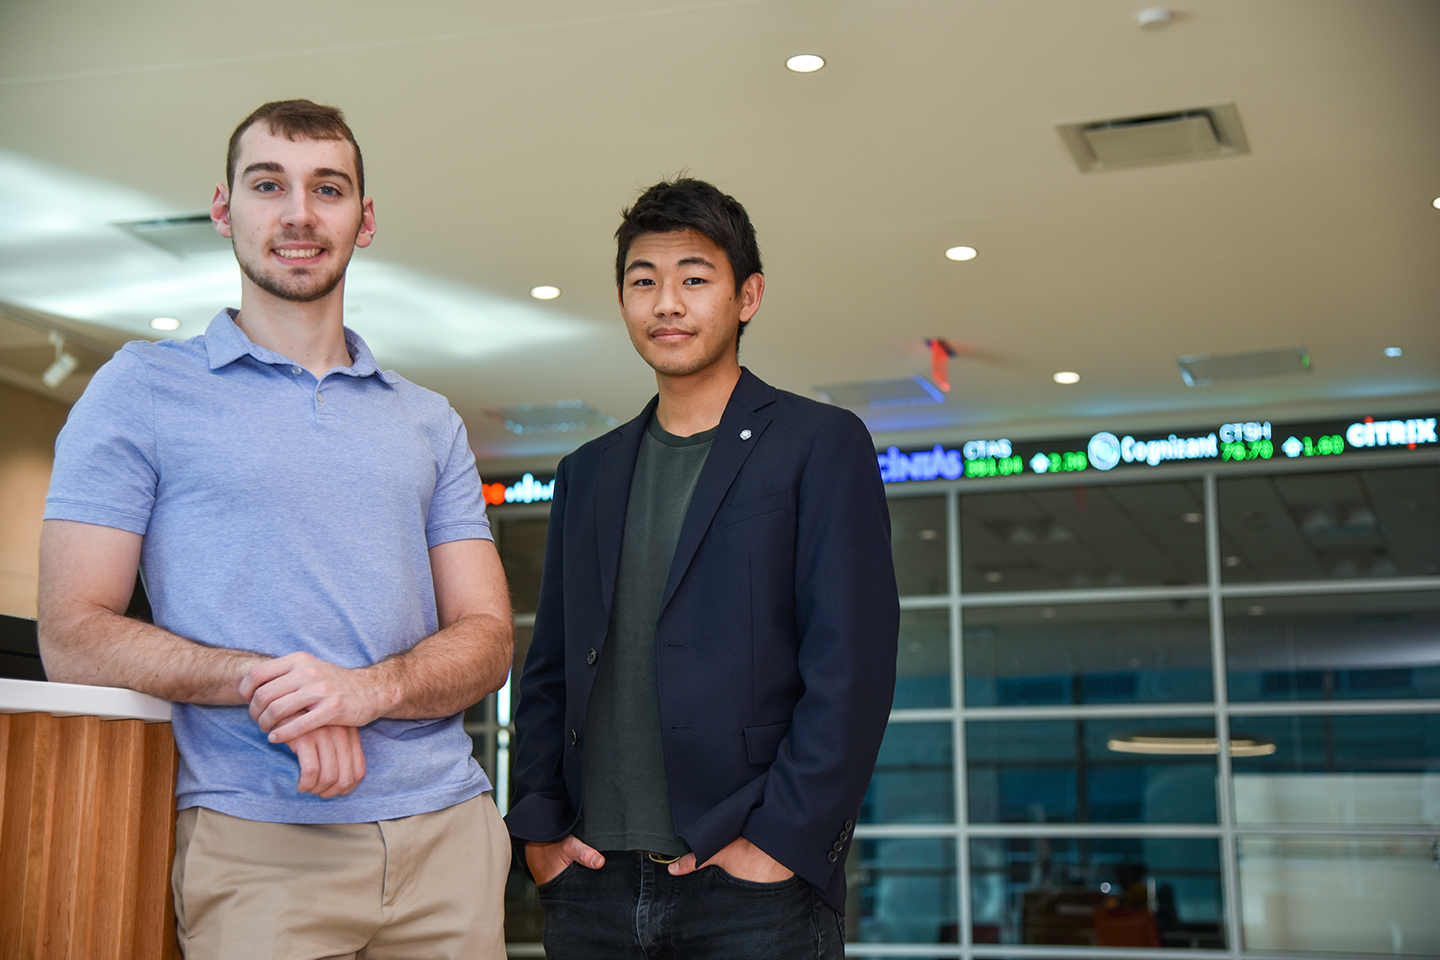 Nebraska Business Students Place Top 10 in Global E-Trading Challenge